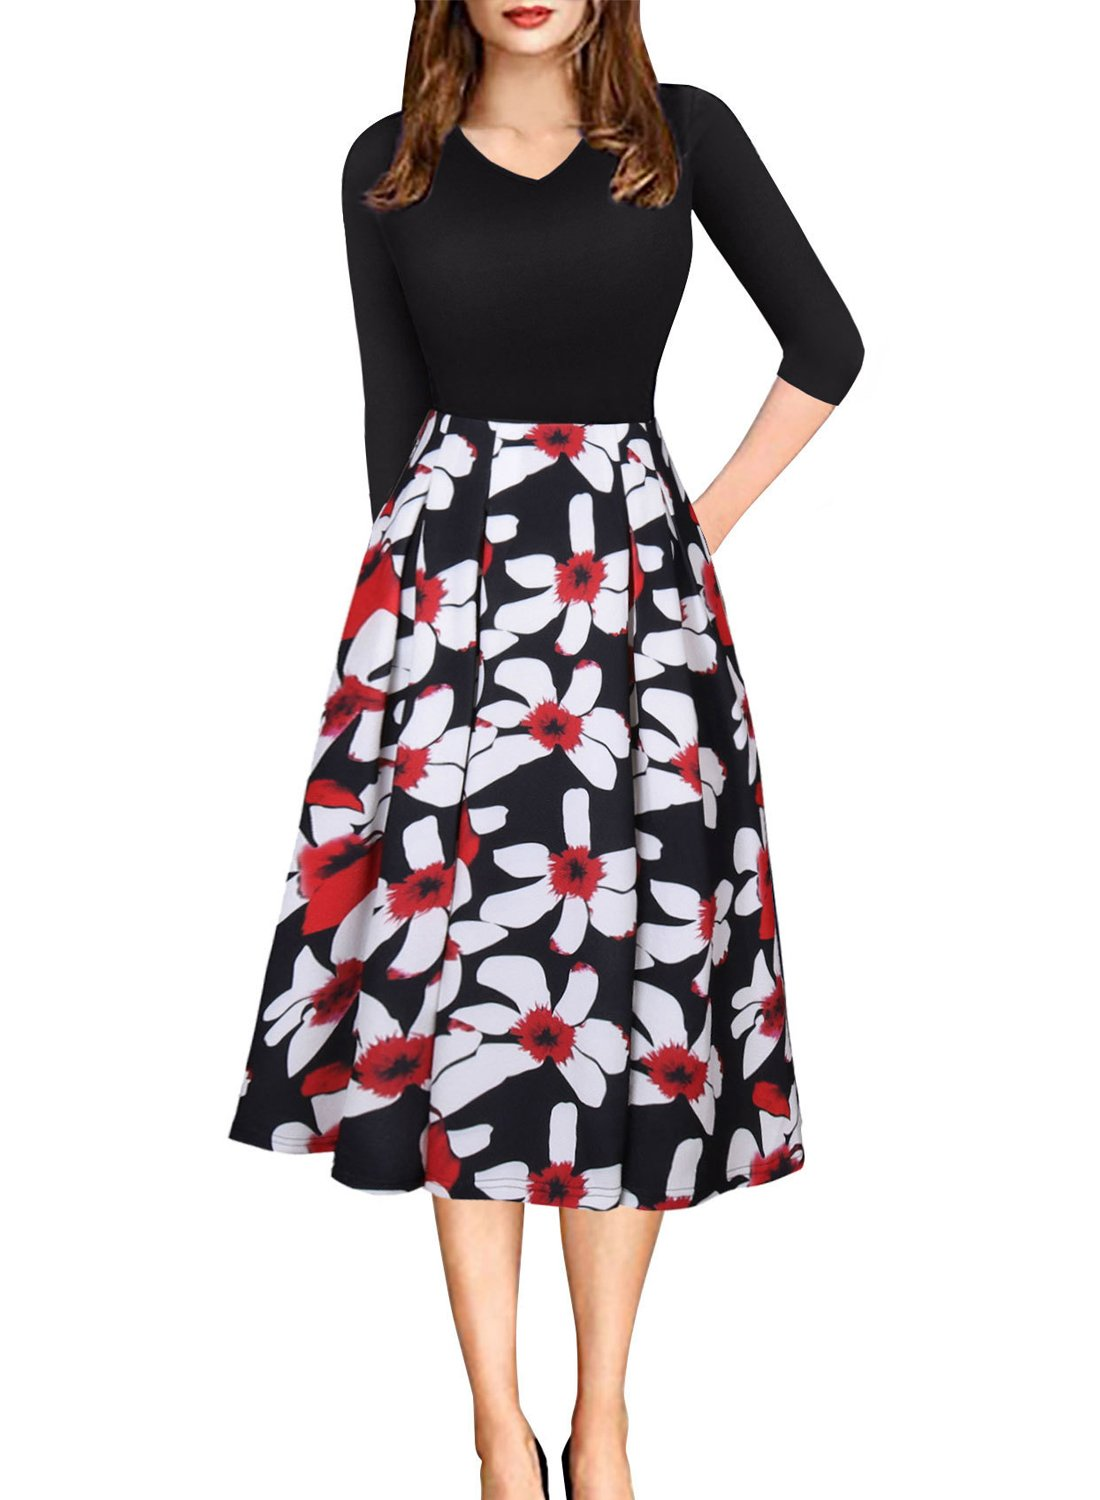 HUSKARY Women's Vintage Floral Patchwork 3/4 Sleeve Pockets Casual Cocktail Party Work Swing Dress,Black,Large